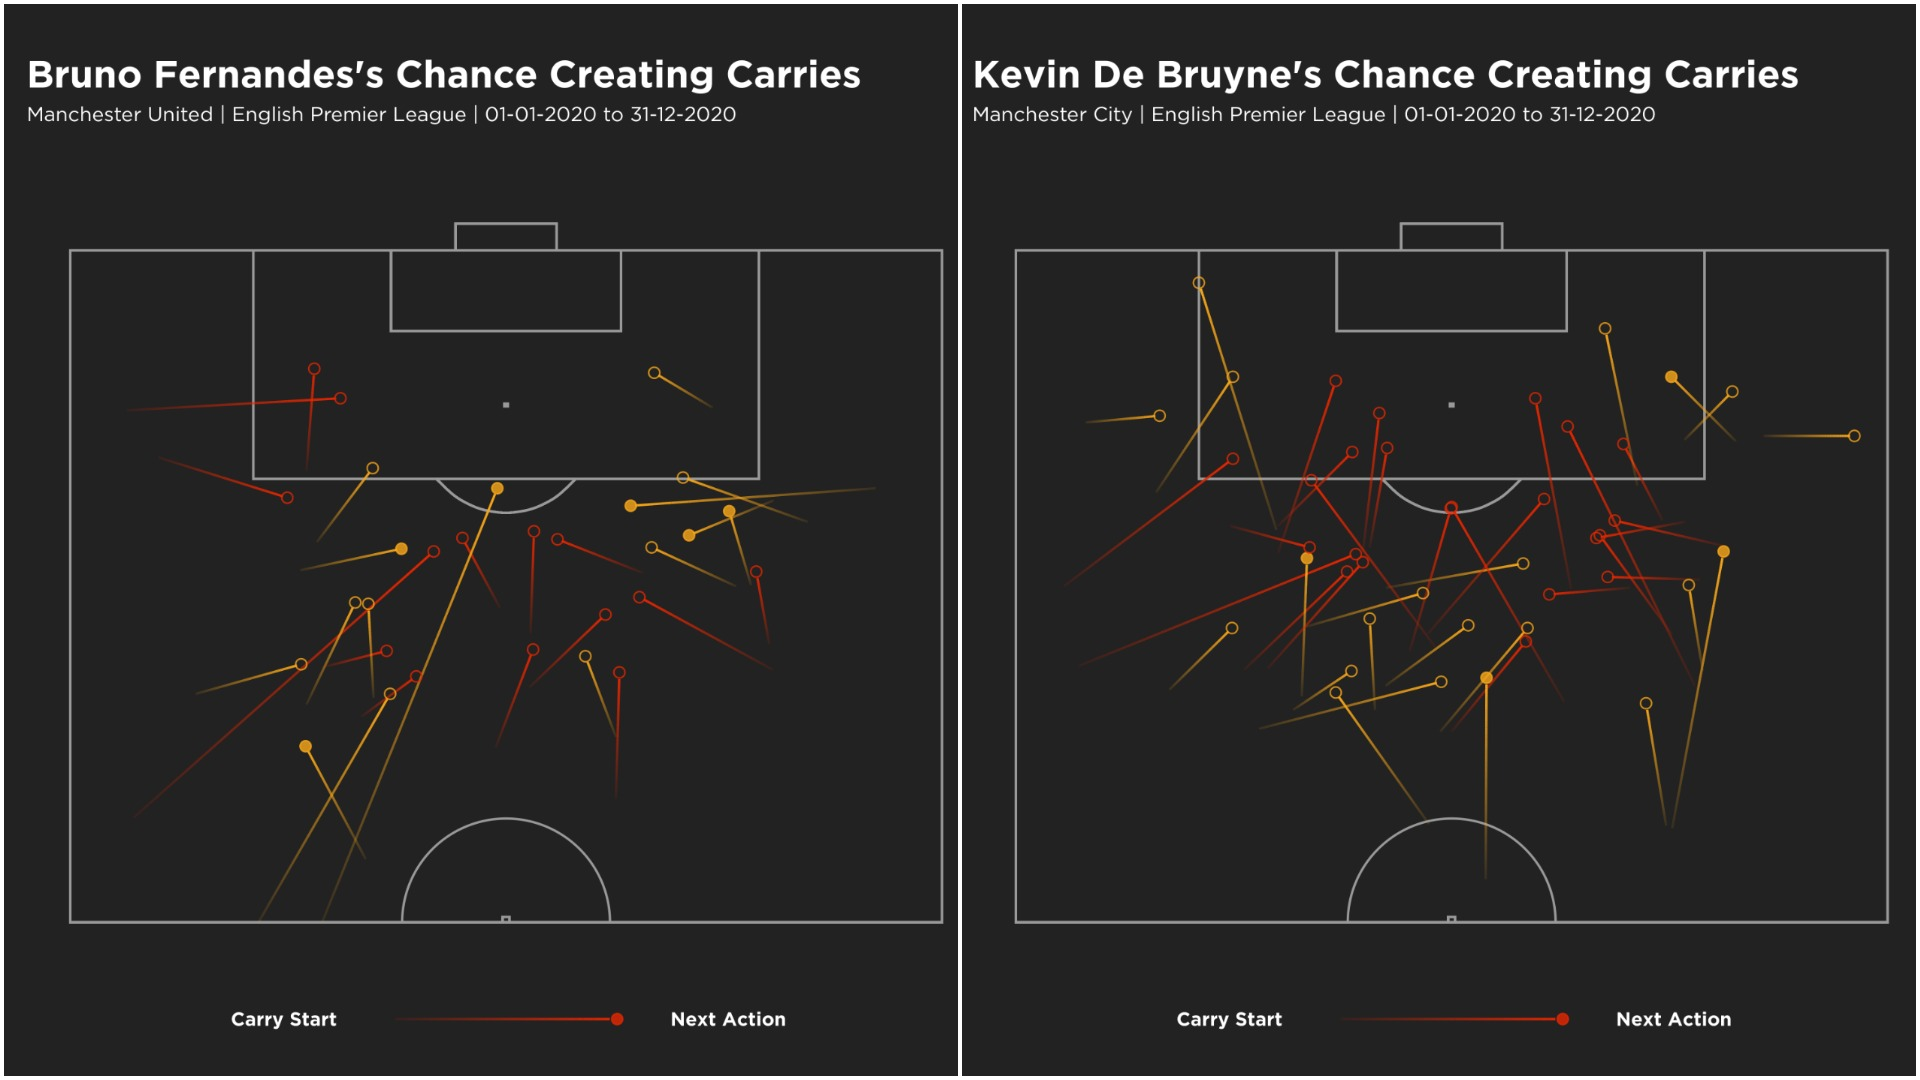 Kevin De Bruyne and Bruno Fernandes' chance-creating carries